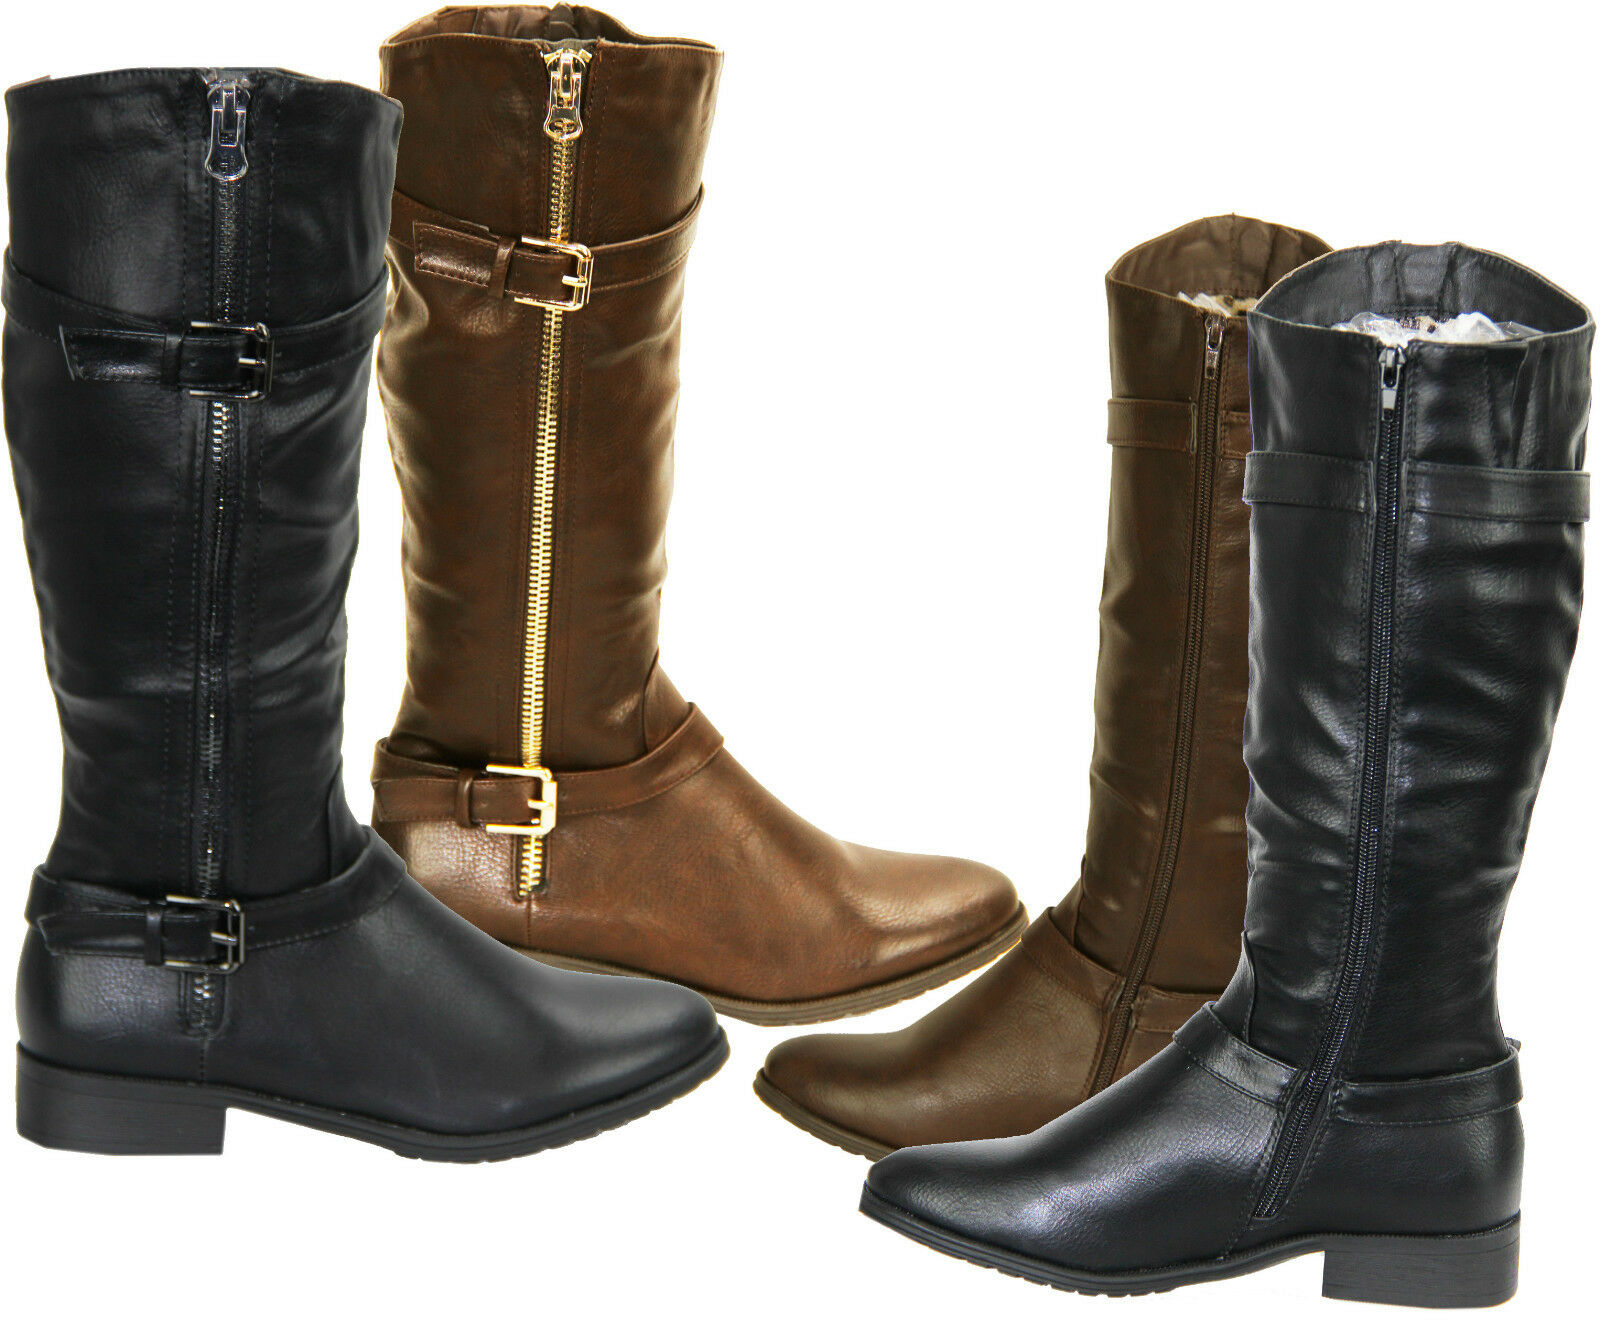 RJ03 NEW UNDER Mujer LADIES MID CALF UNDER NEW KNEE BIKER WINTER RIDING ZIP UP botas Zapatos 3be266